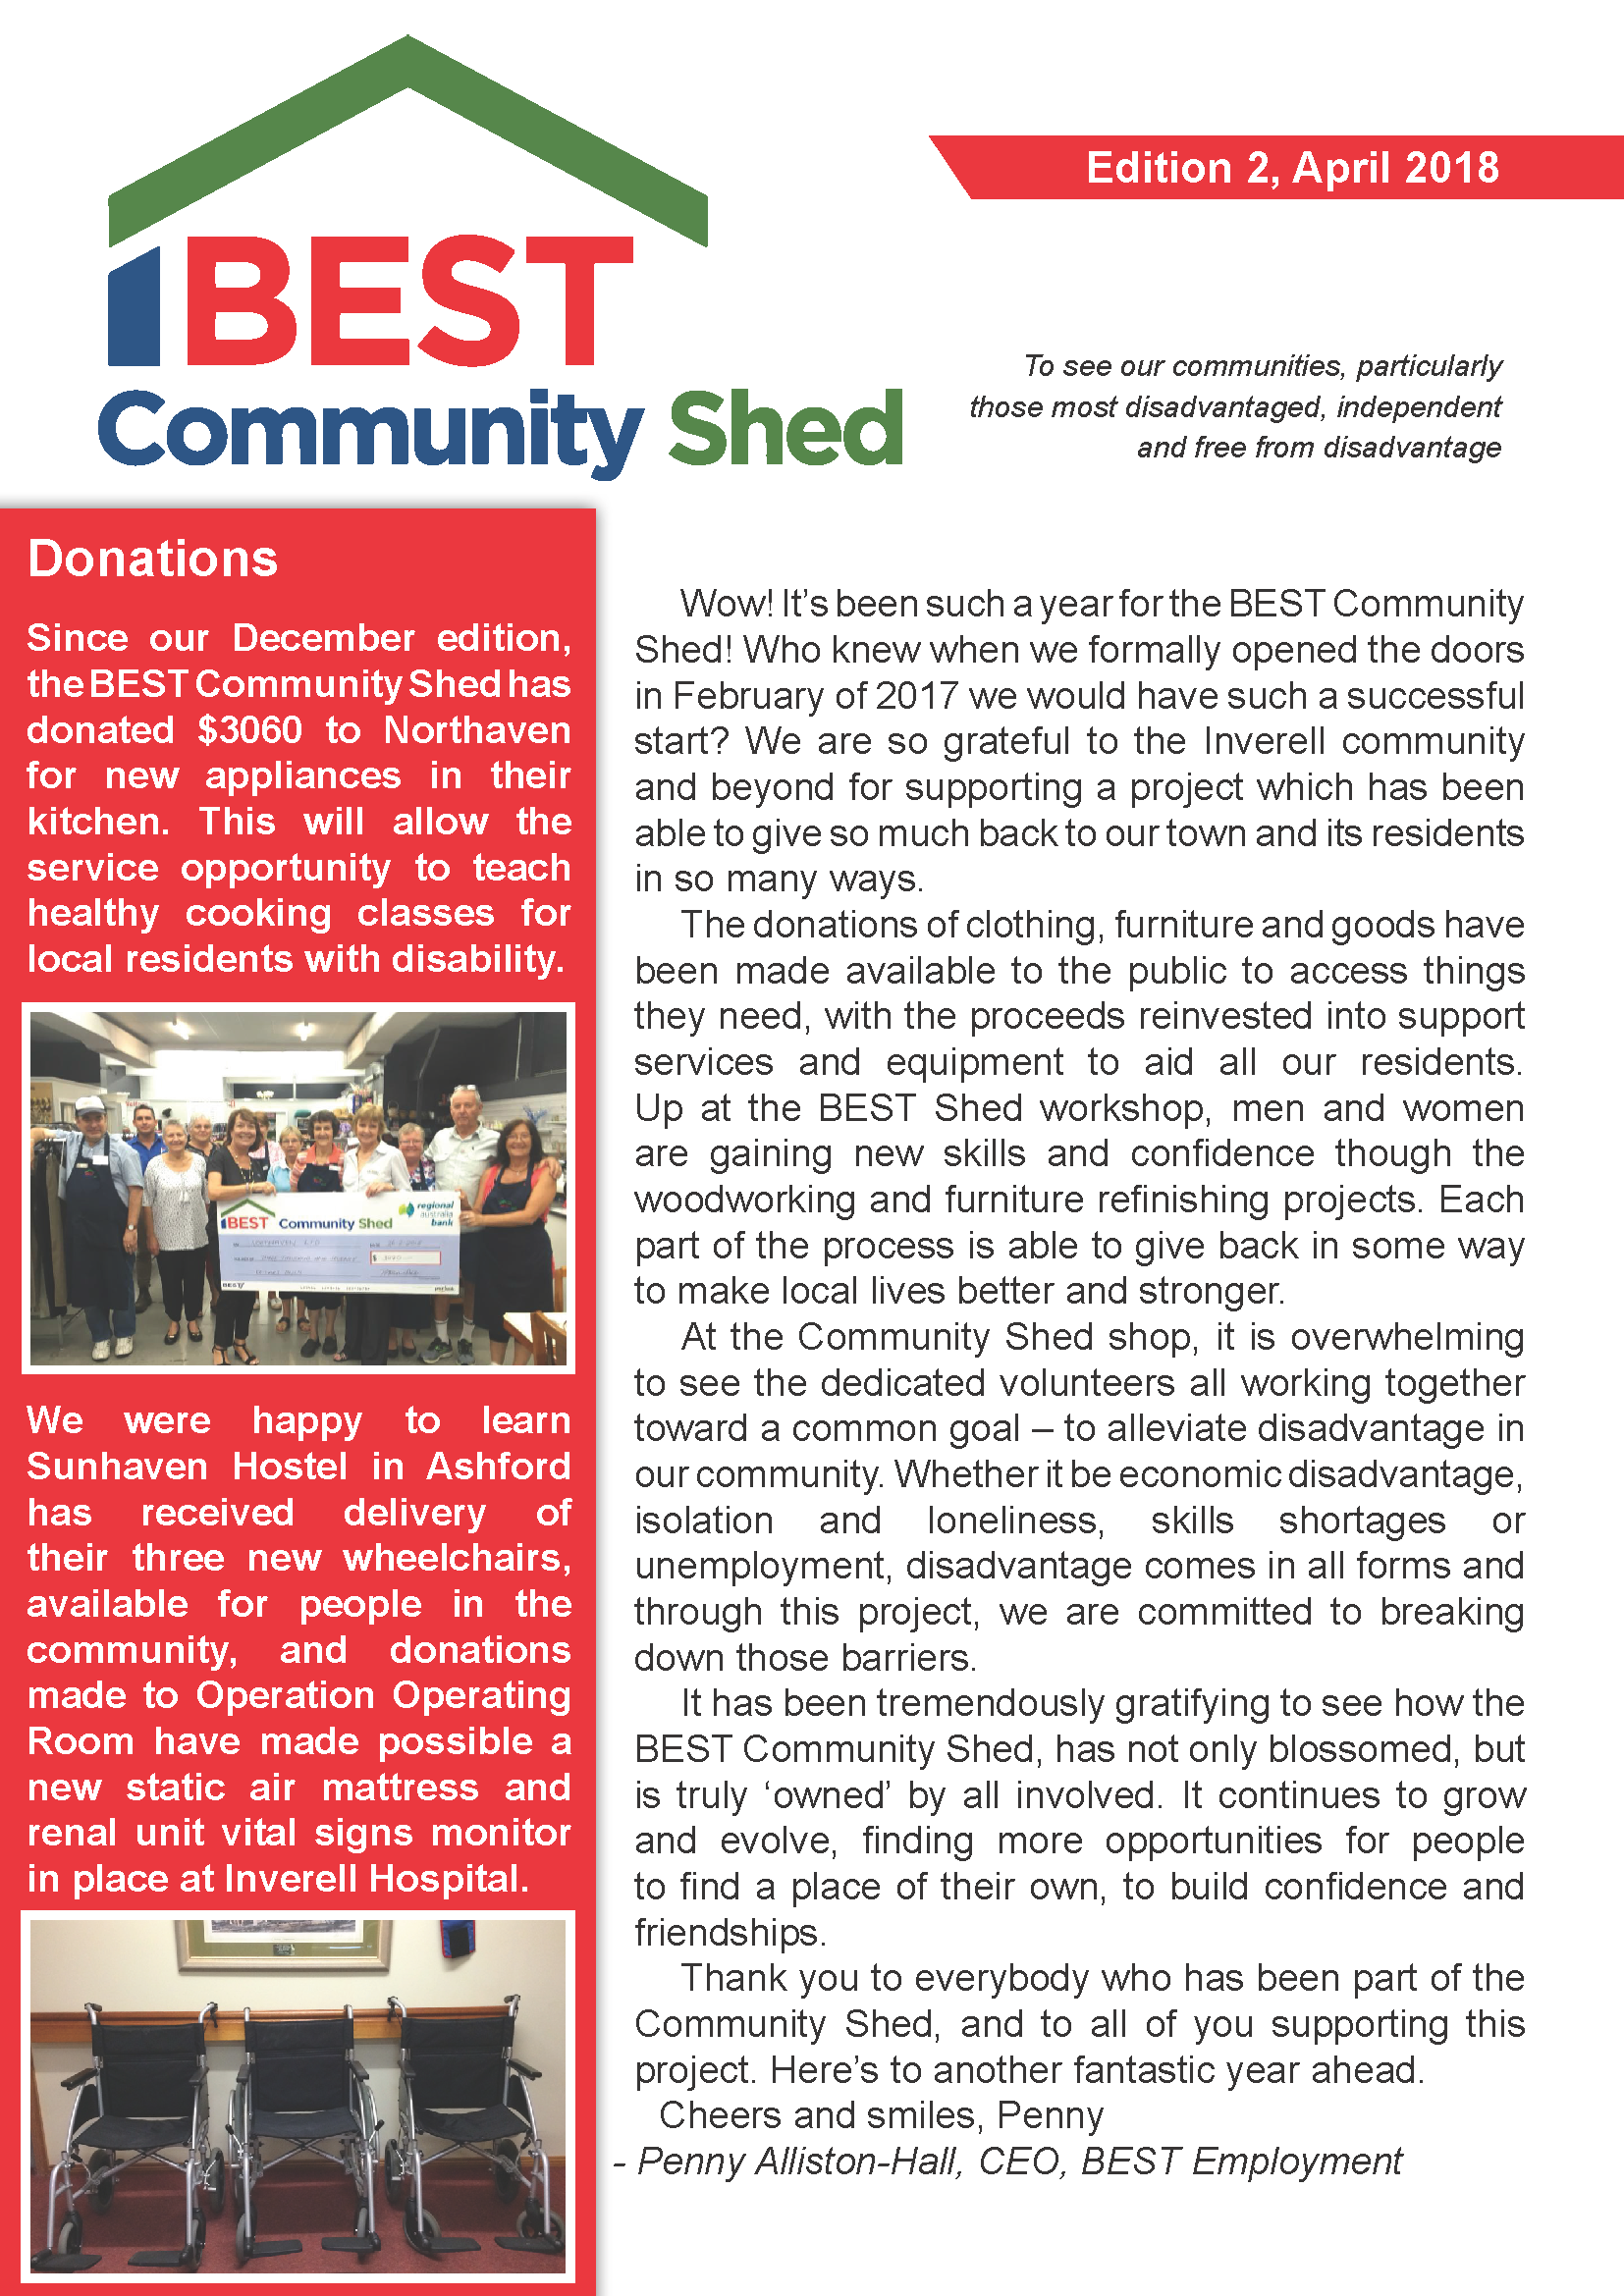 BCS Newsletter Edition 2, April 2018